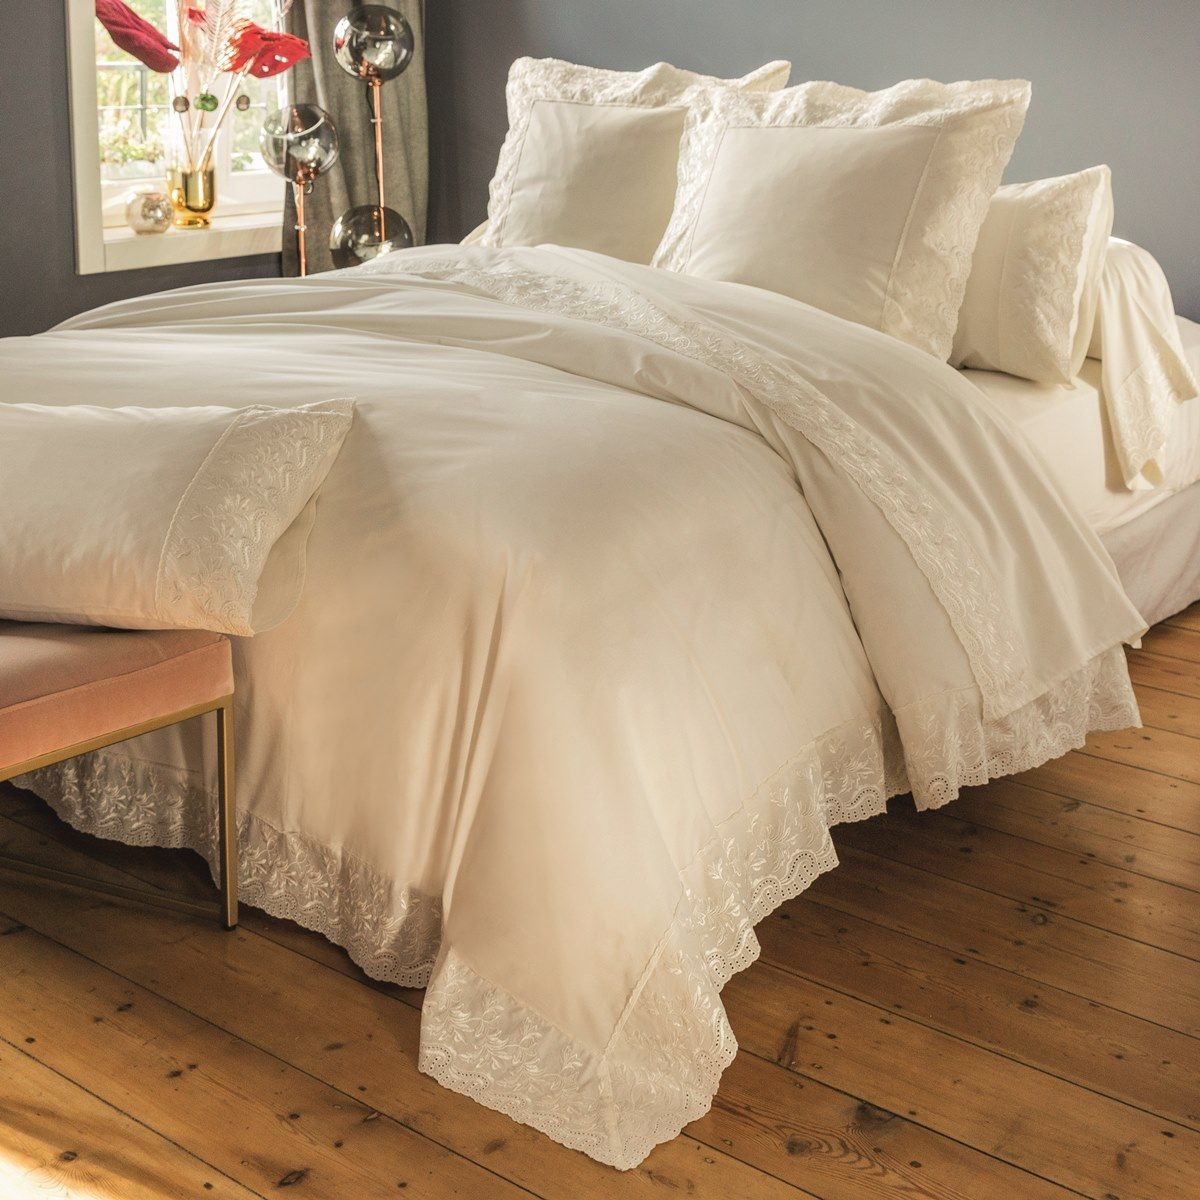 Housse Couette Poesie